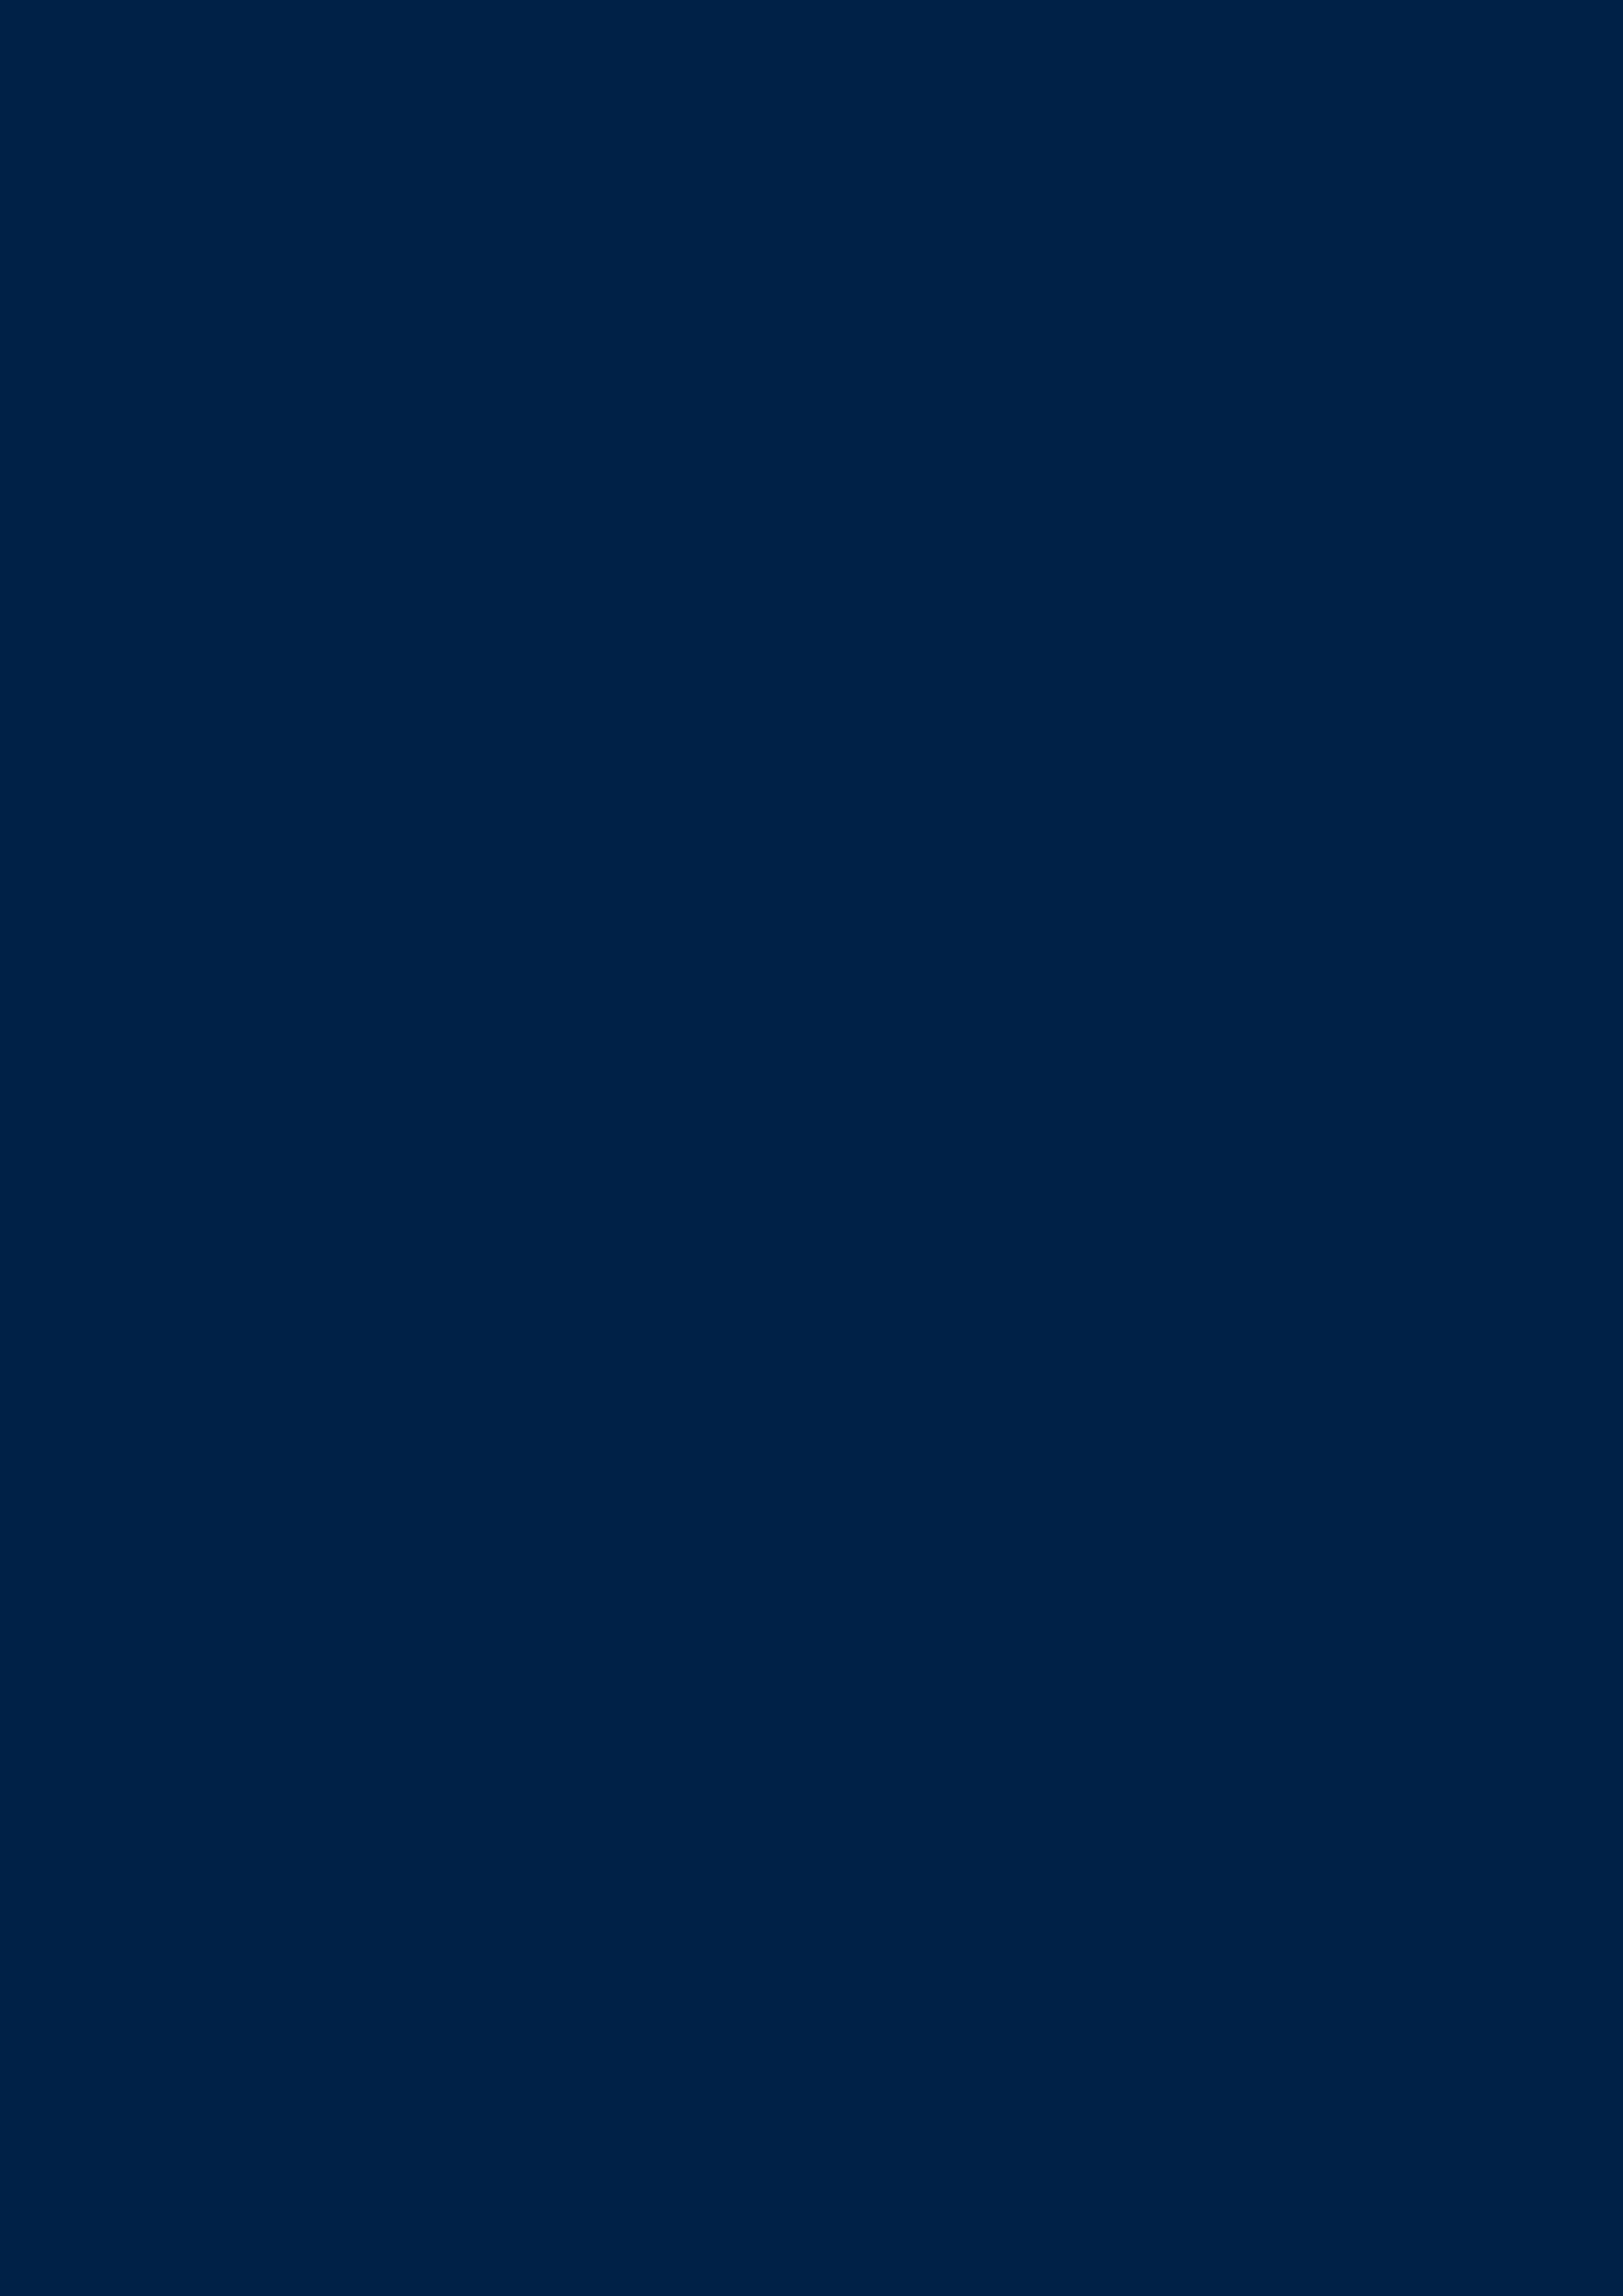 2480x3508 Oxford Blue Solid Color Background